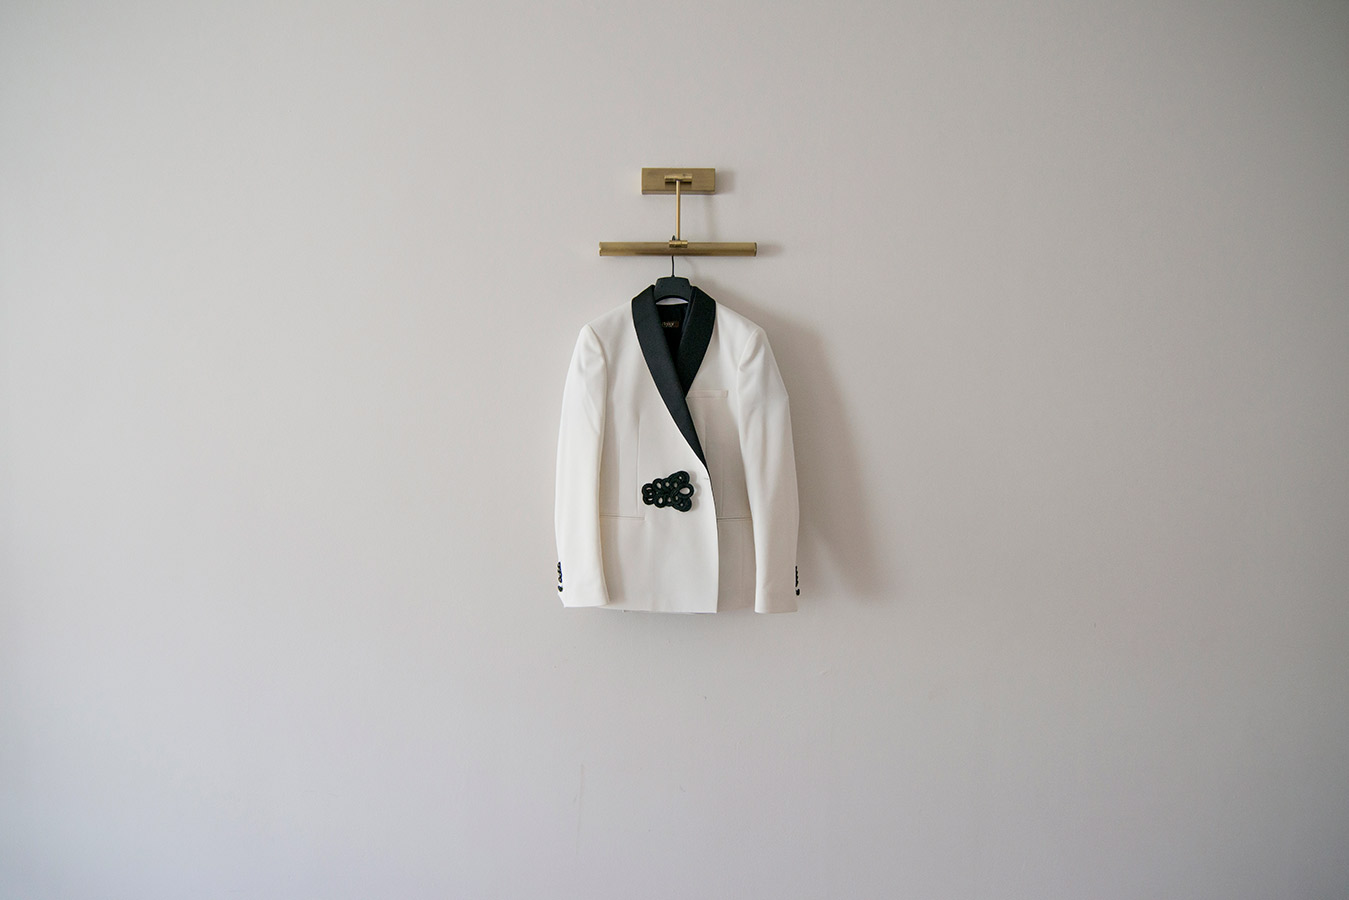 groom's white wedding suit hanging up